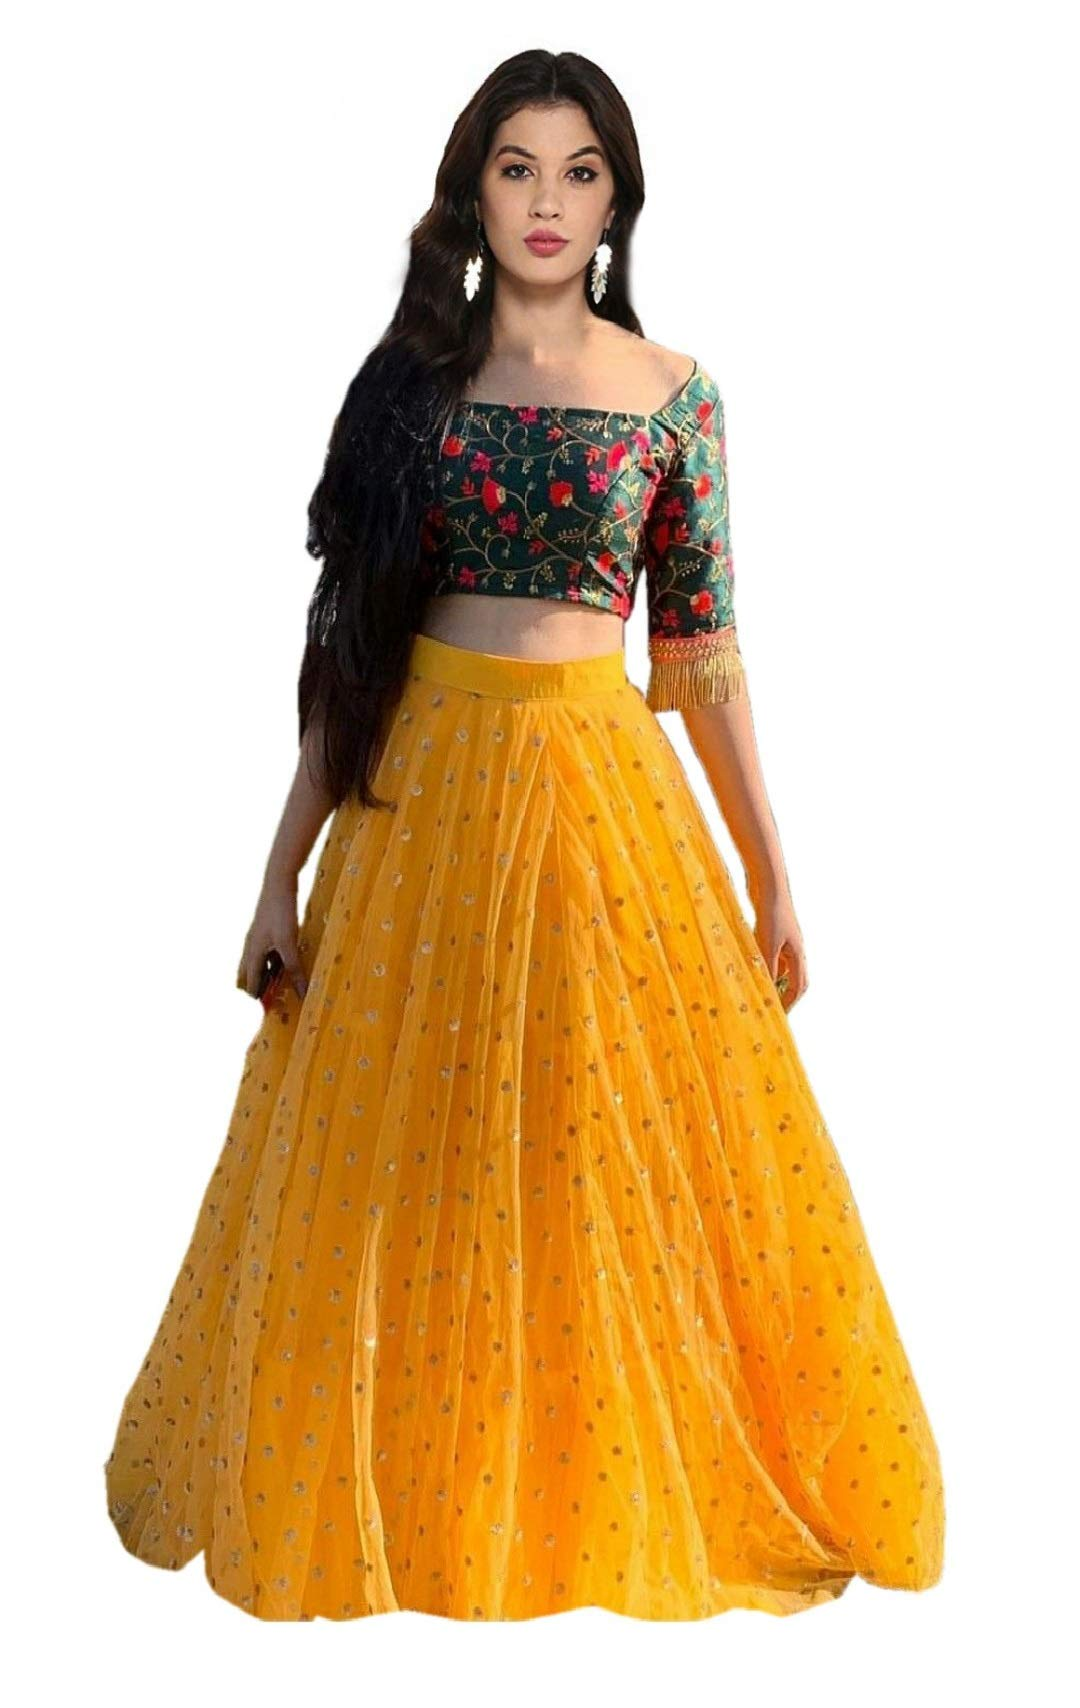 109ef6d4ad Sojitra Enterprise Women's Heavy Net Embroidered Semi Stitched yellow  colour lehenga choli With Blouse Piece (